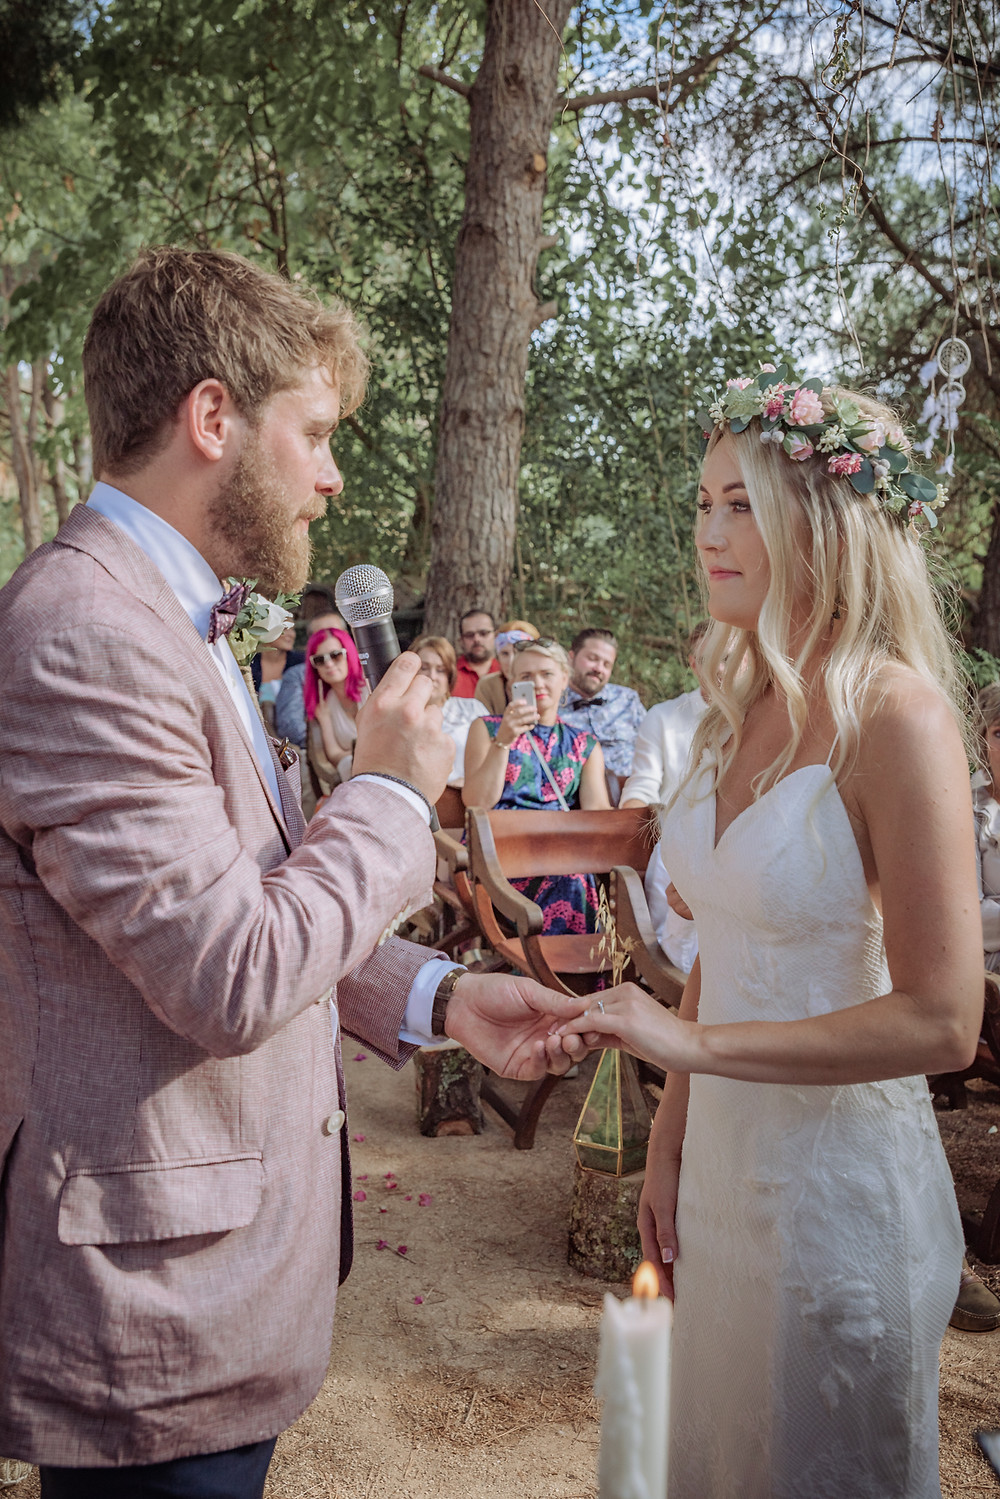 Bride and groom taking their wedding vows in a forest in Portugal